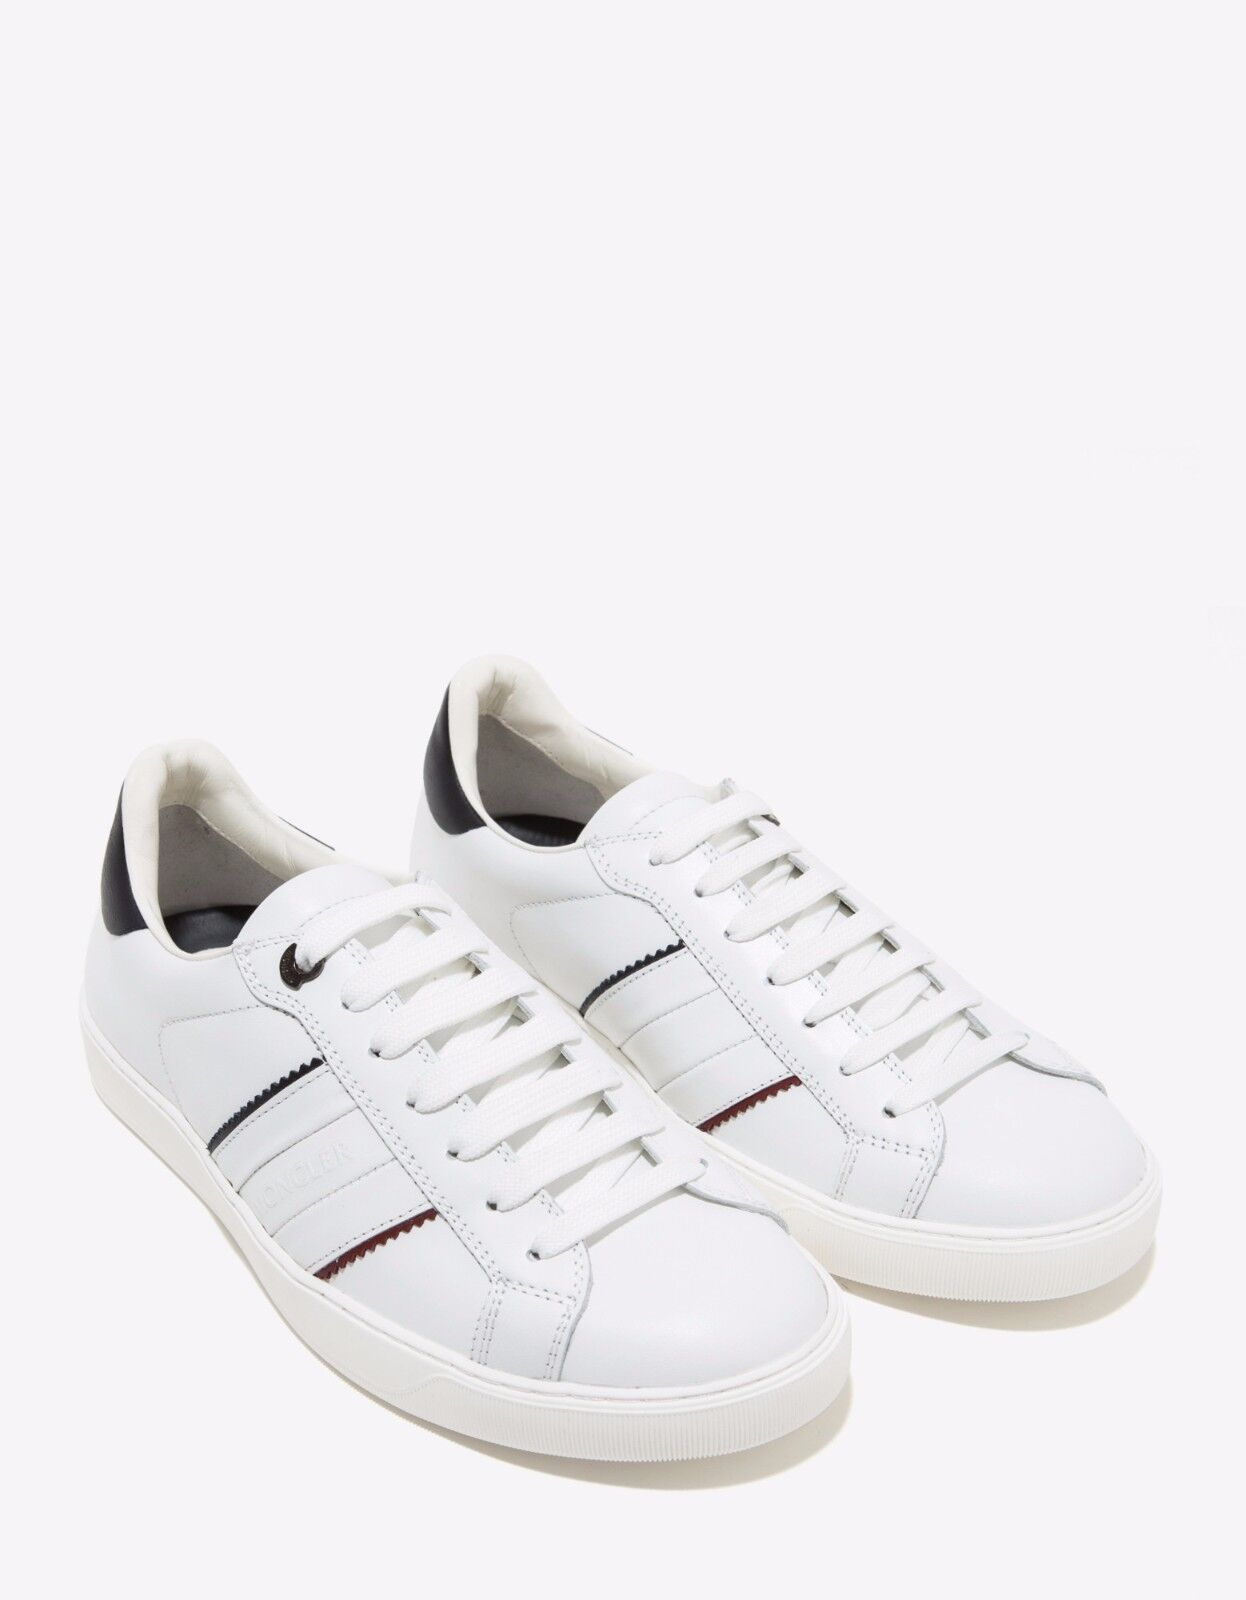 New Moncler New Gourette White Leather Trainers RRP  BNWT